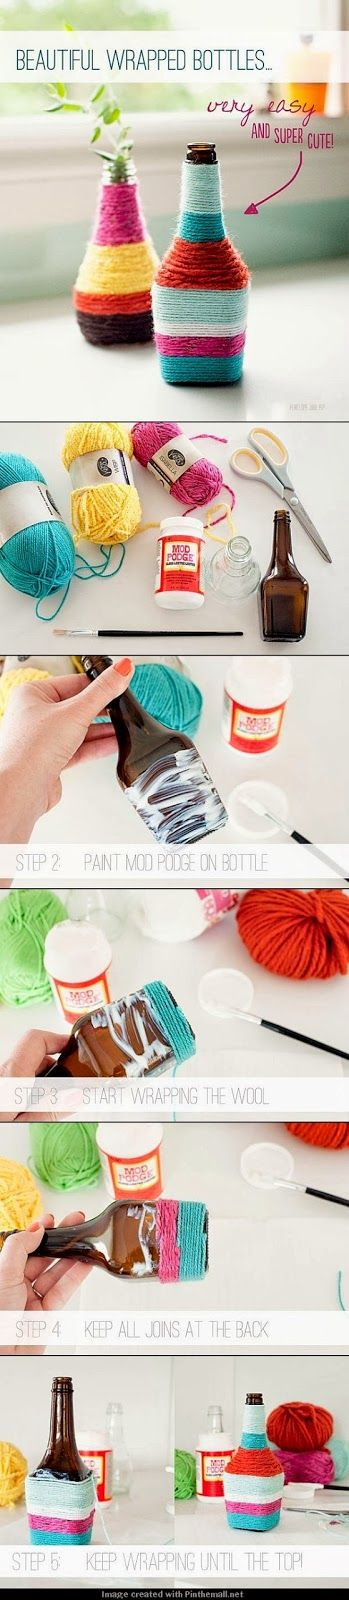 Beautiful Wrapped Bottles #DIY #crafts